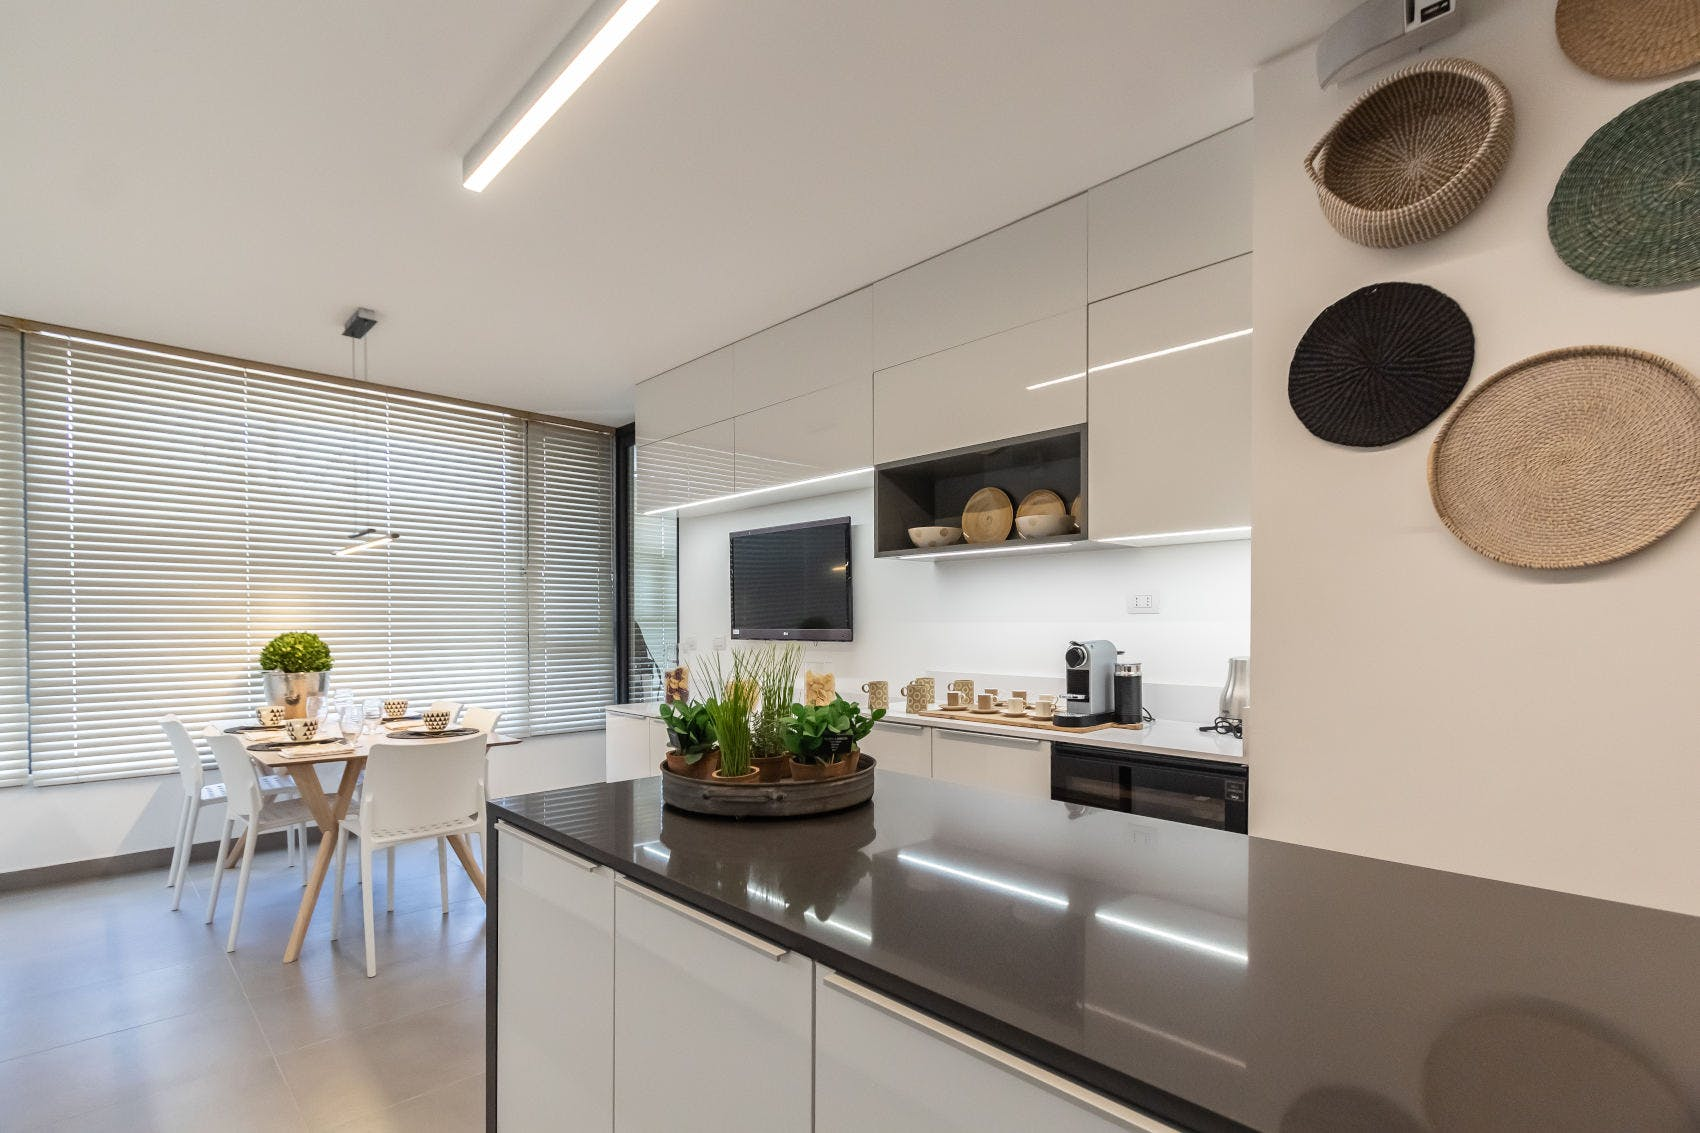 Image of Encimera SIlestone Marengo 1 in Nice weather: let's make the most of it! - Cosentino